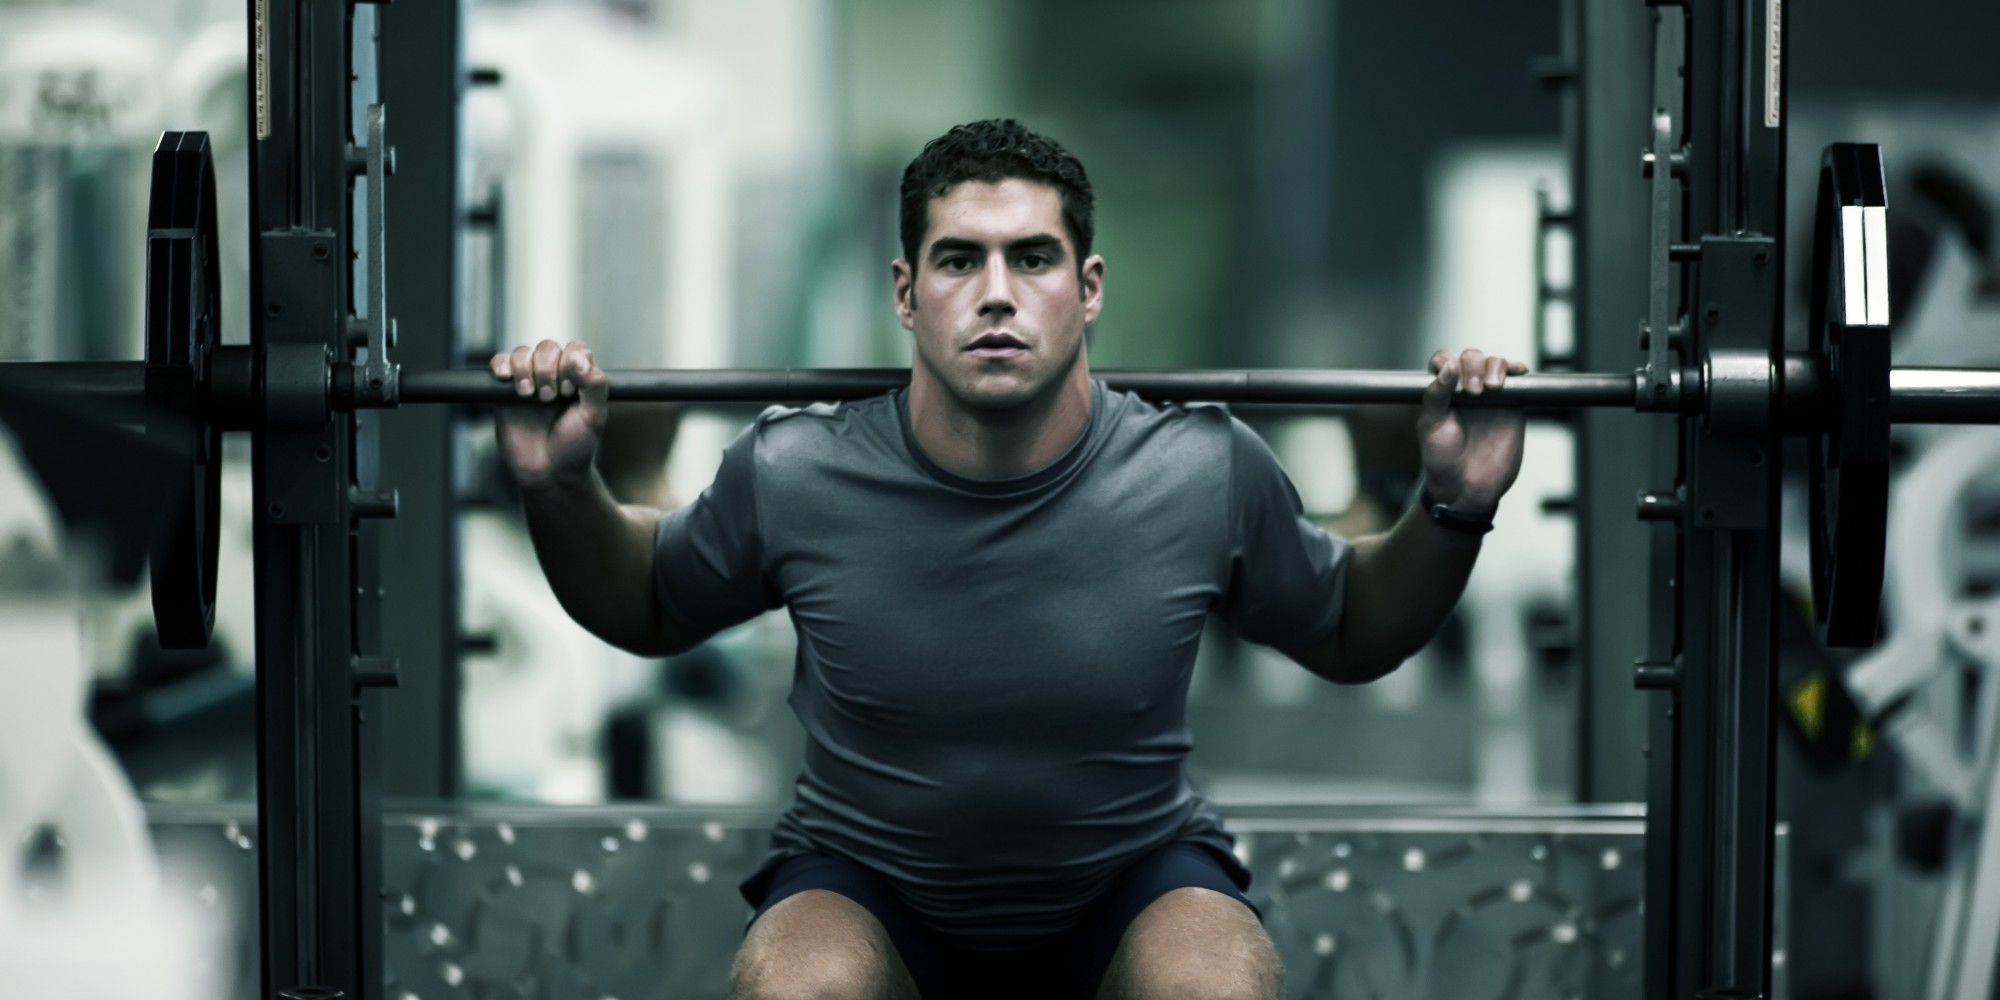 Should You Be Doing Total Body Workouts or Targeting Specific Areas?